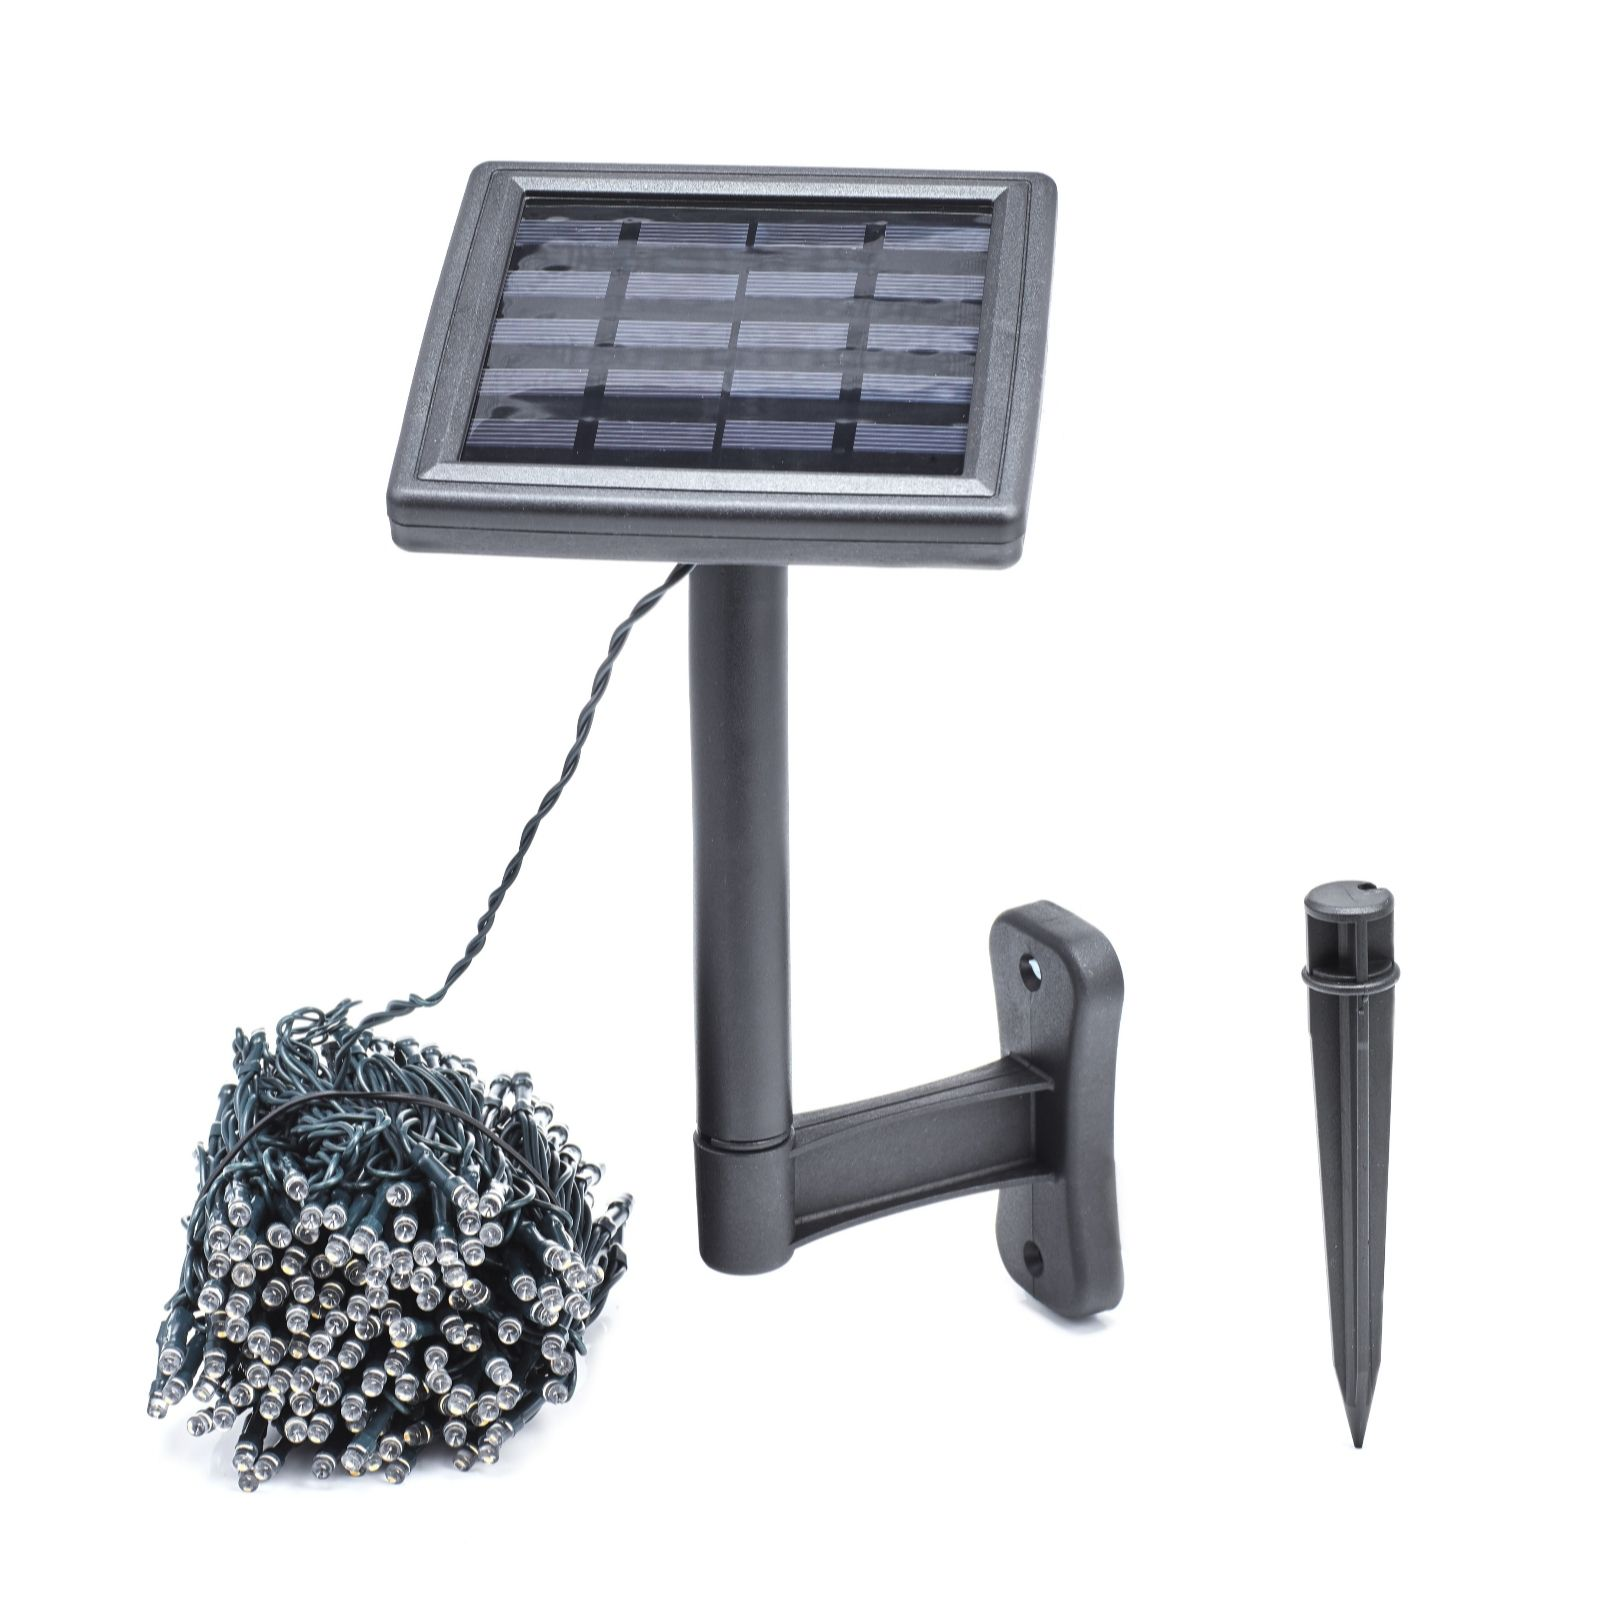 Qvc Solar String Lights : Luxform 13m 250 LED Solar Powered Multi Function String Lights - Page 1 - QVC UK